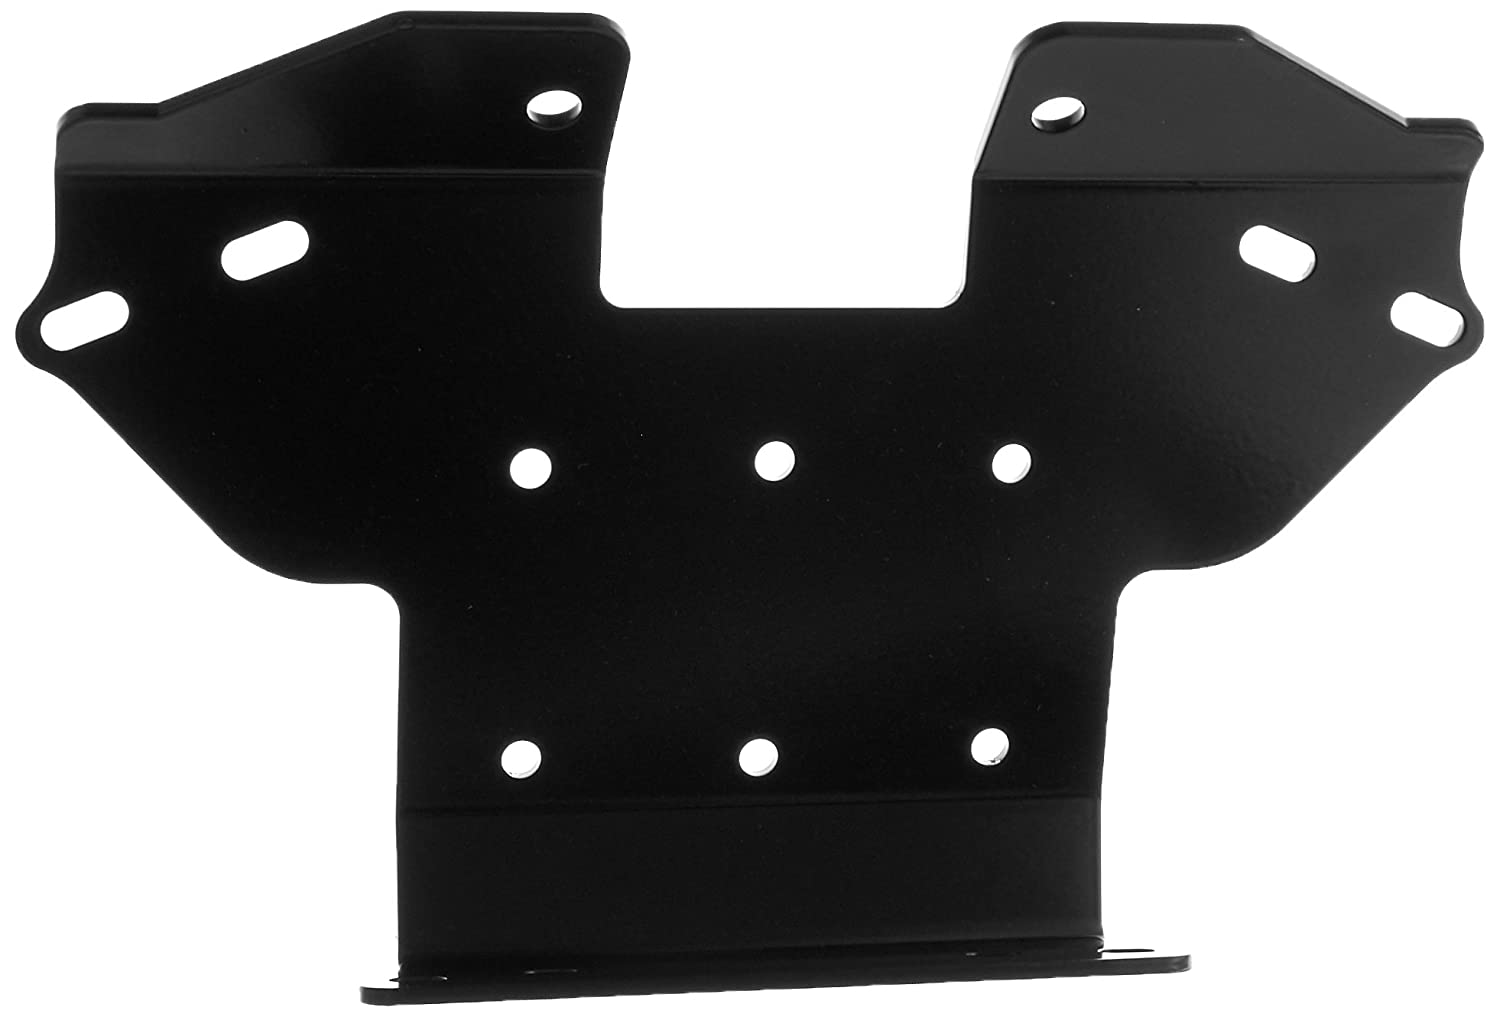 KFI Products 100535 Winch Mount for Kawasaki Brute Force 650//750 4x4